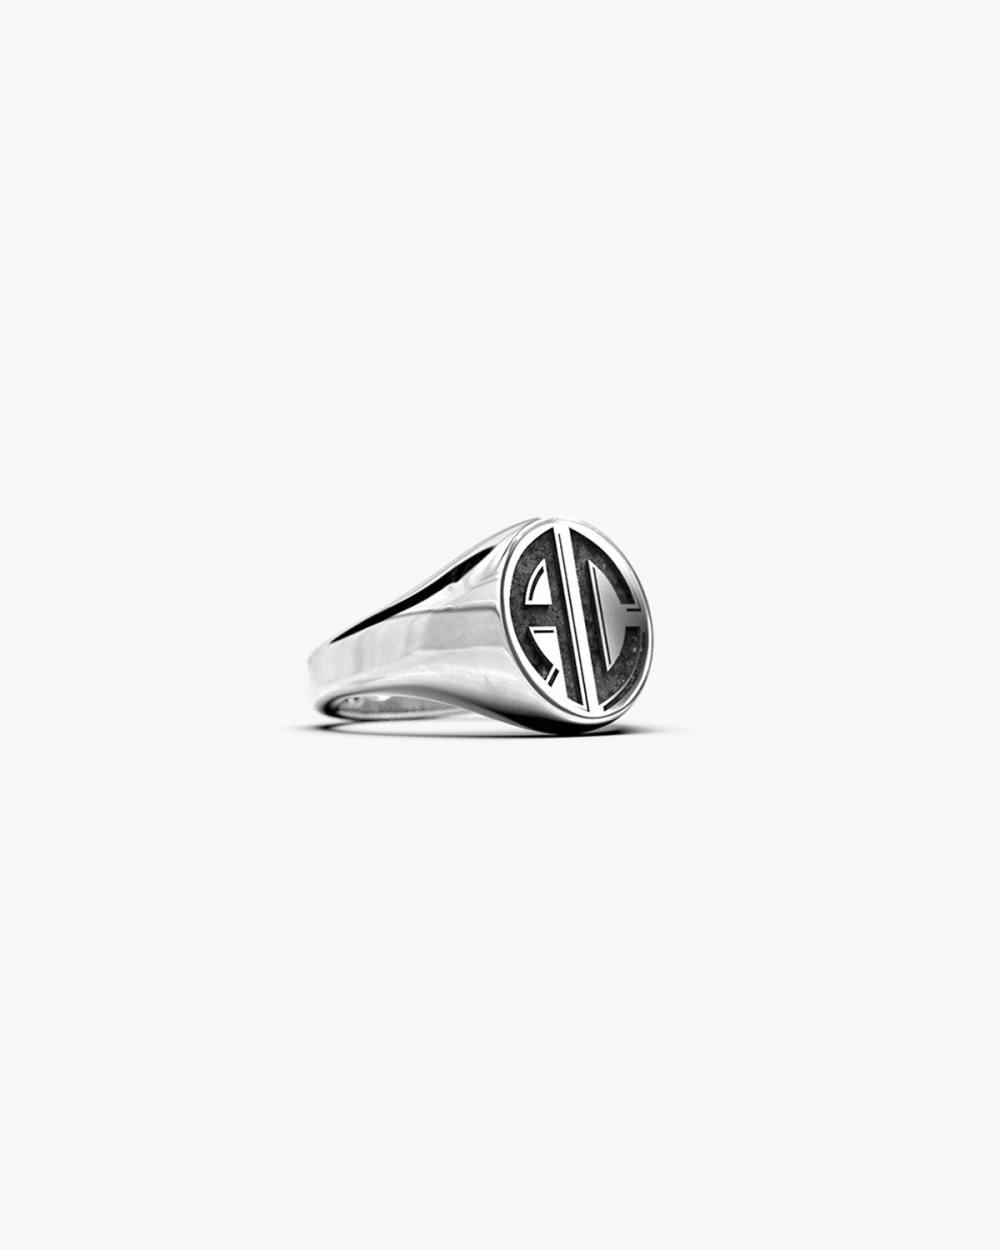 MYNOVE25 SMALL OVAL SIGNET RING NOVE25